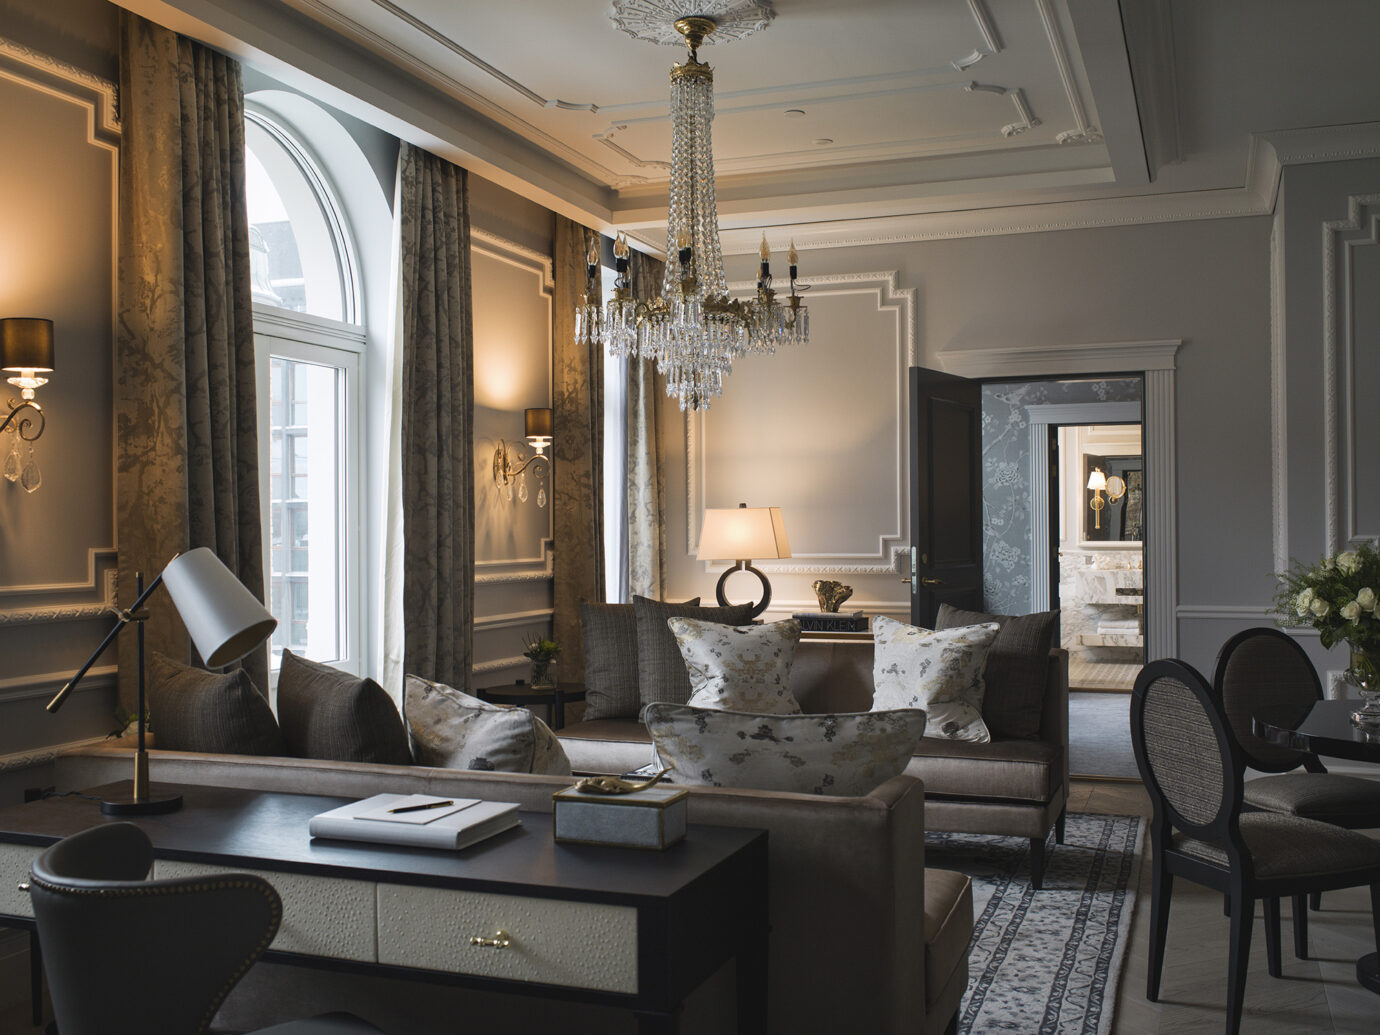 Signature Suite at Britannia in Norway